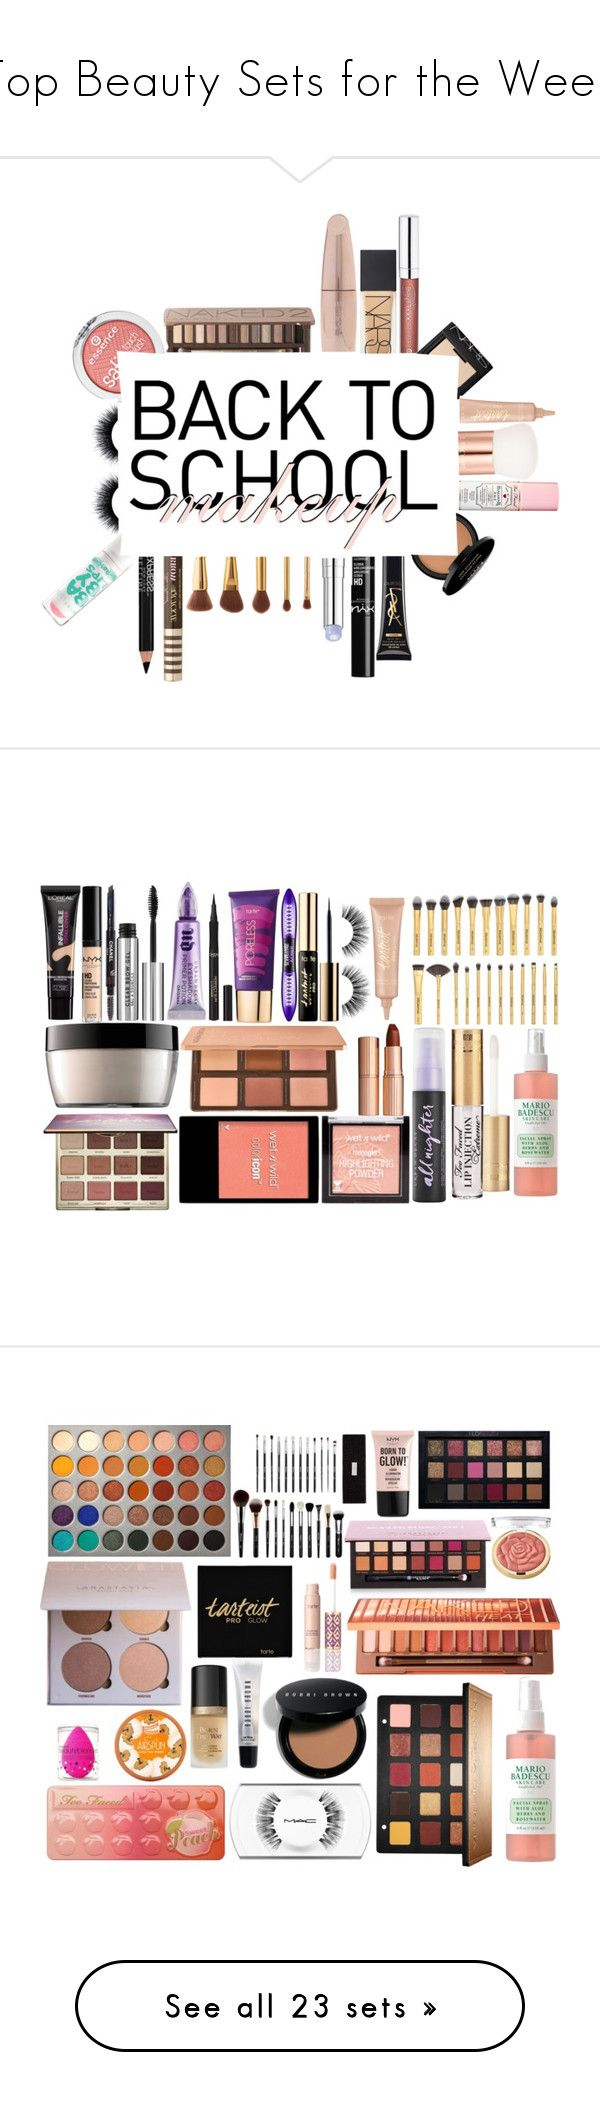 """""""Top Beauty Sets for the Week"""" by polyvore ❤ liked on Polyvore featuring beauty, Forever 21, Urban Decay, NARS Cosmetics, Essence, tarte, Maybelline, Too Faced Cosmetics, Lancôme and Christian Dior"""